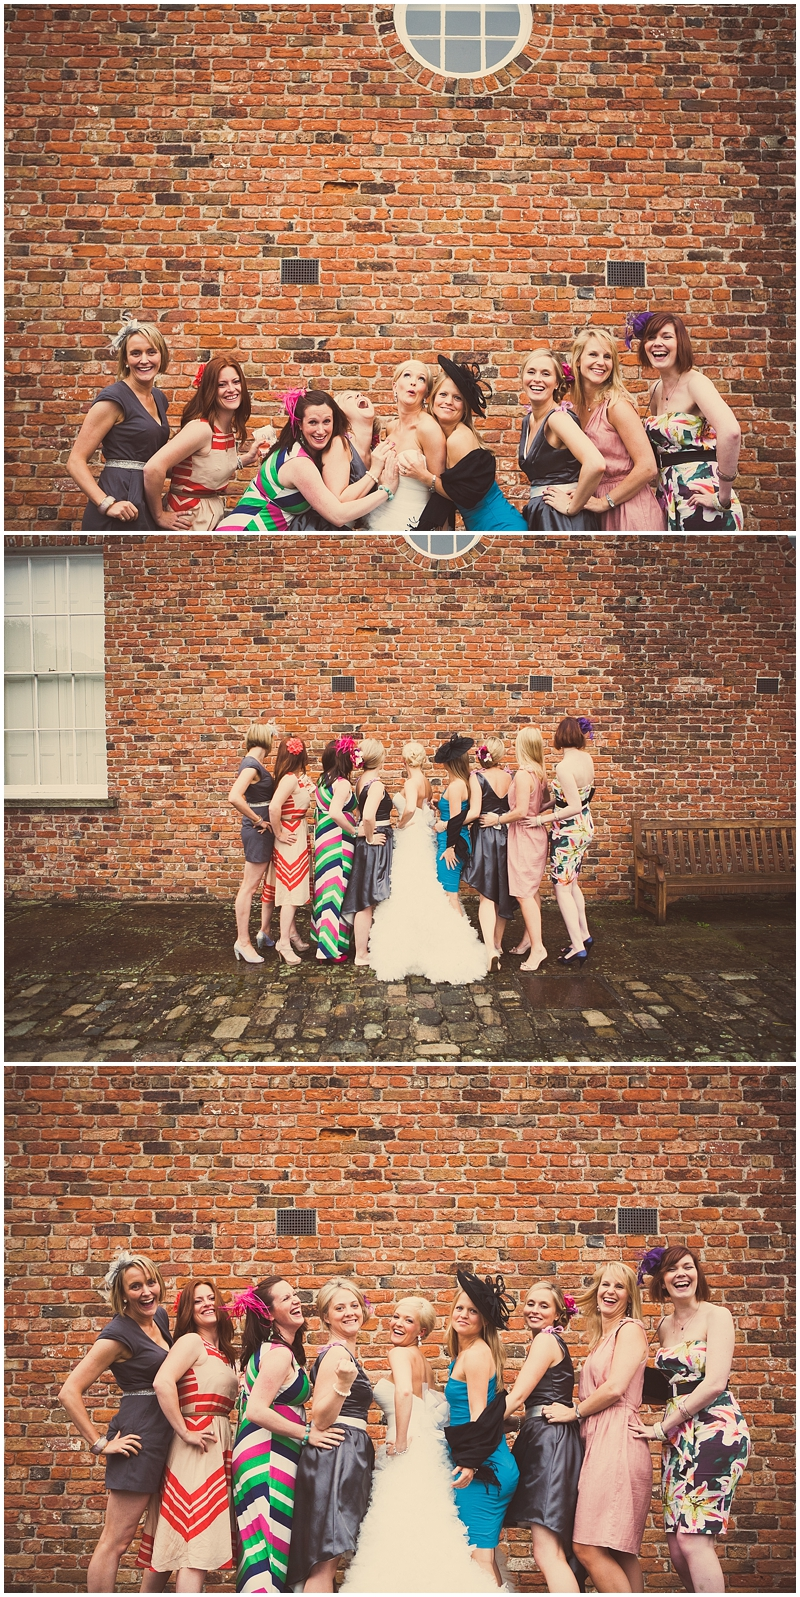 lucie_andrew_wedding_hires_315